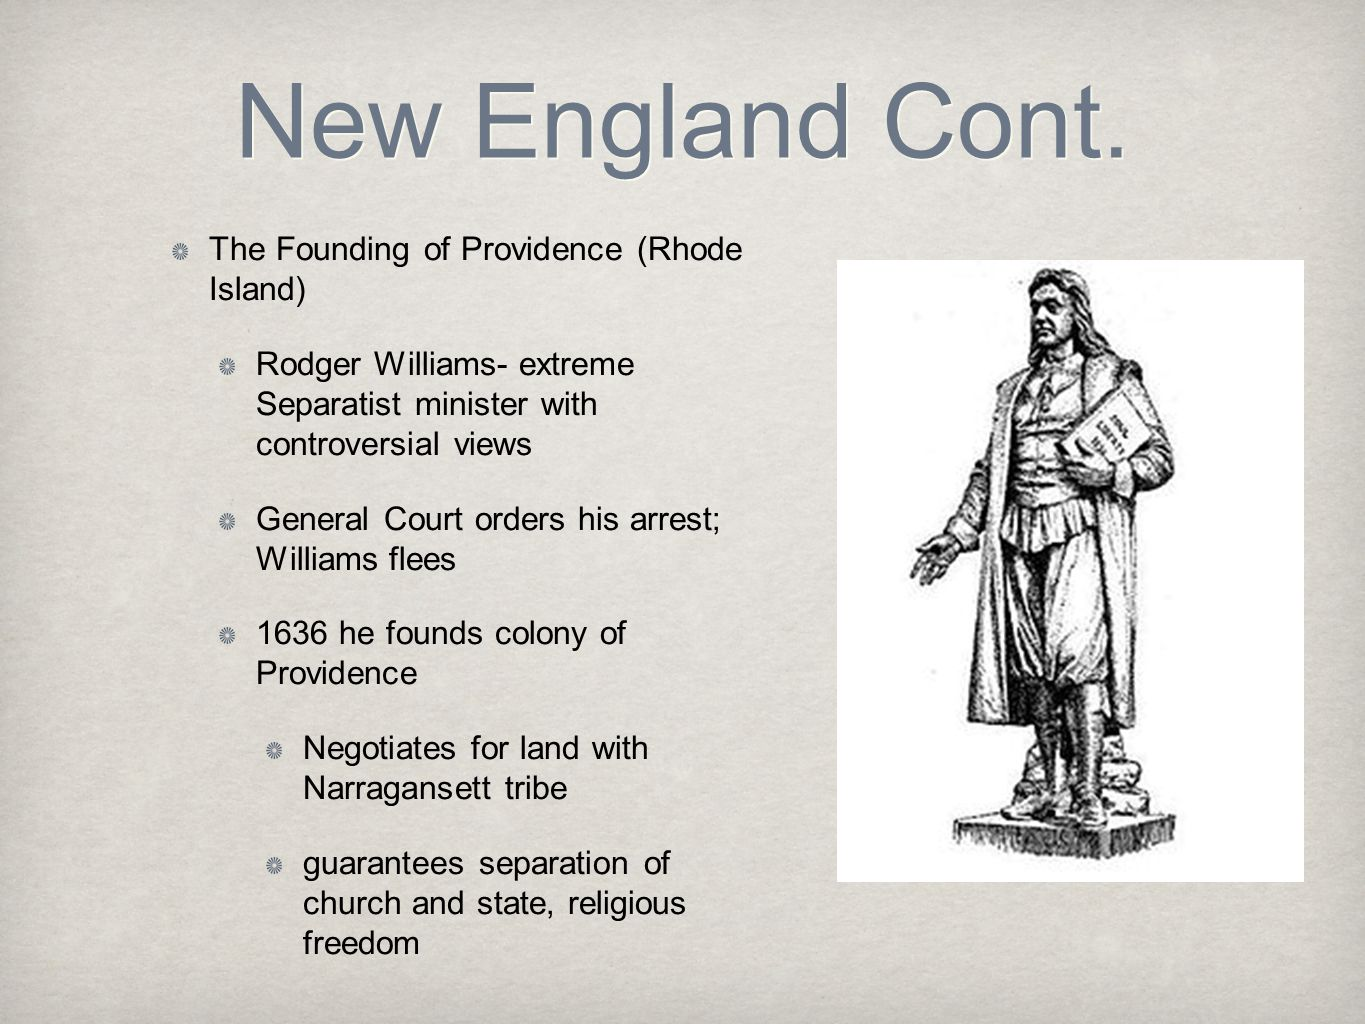 New England Cont. The Founding of Providence (Rhode Island)